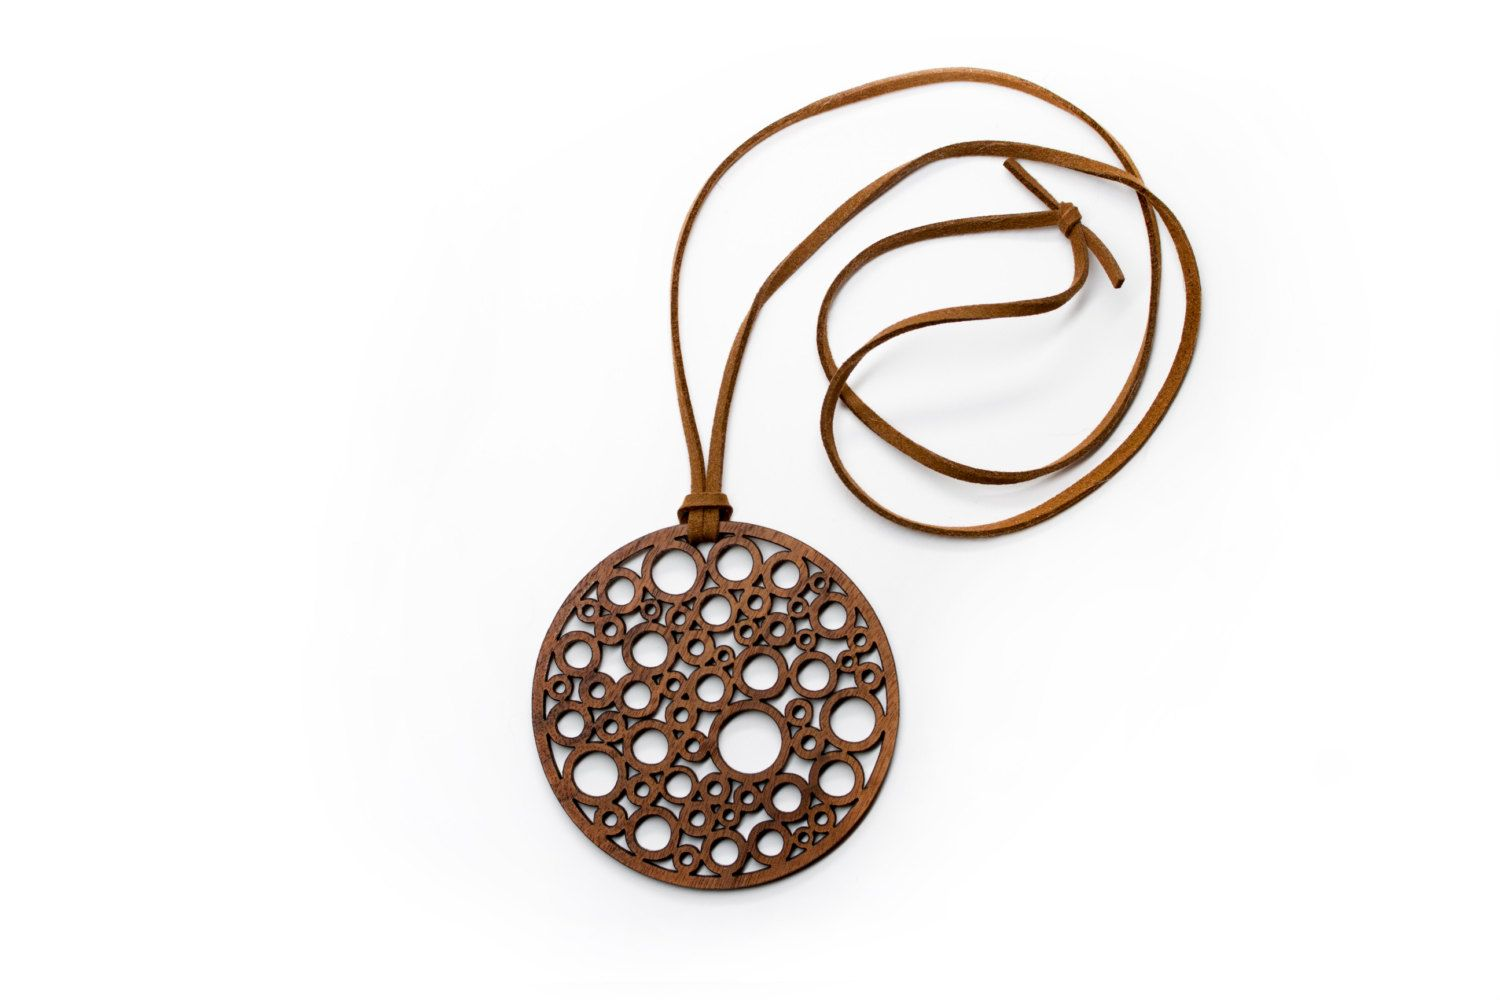 Necklace - Suede Cord with Circular Walnut Wood Pendent